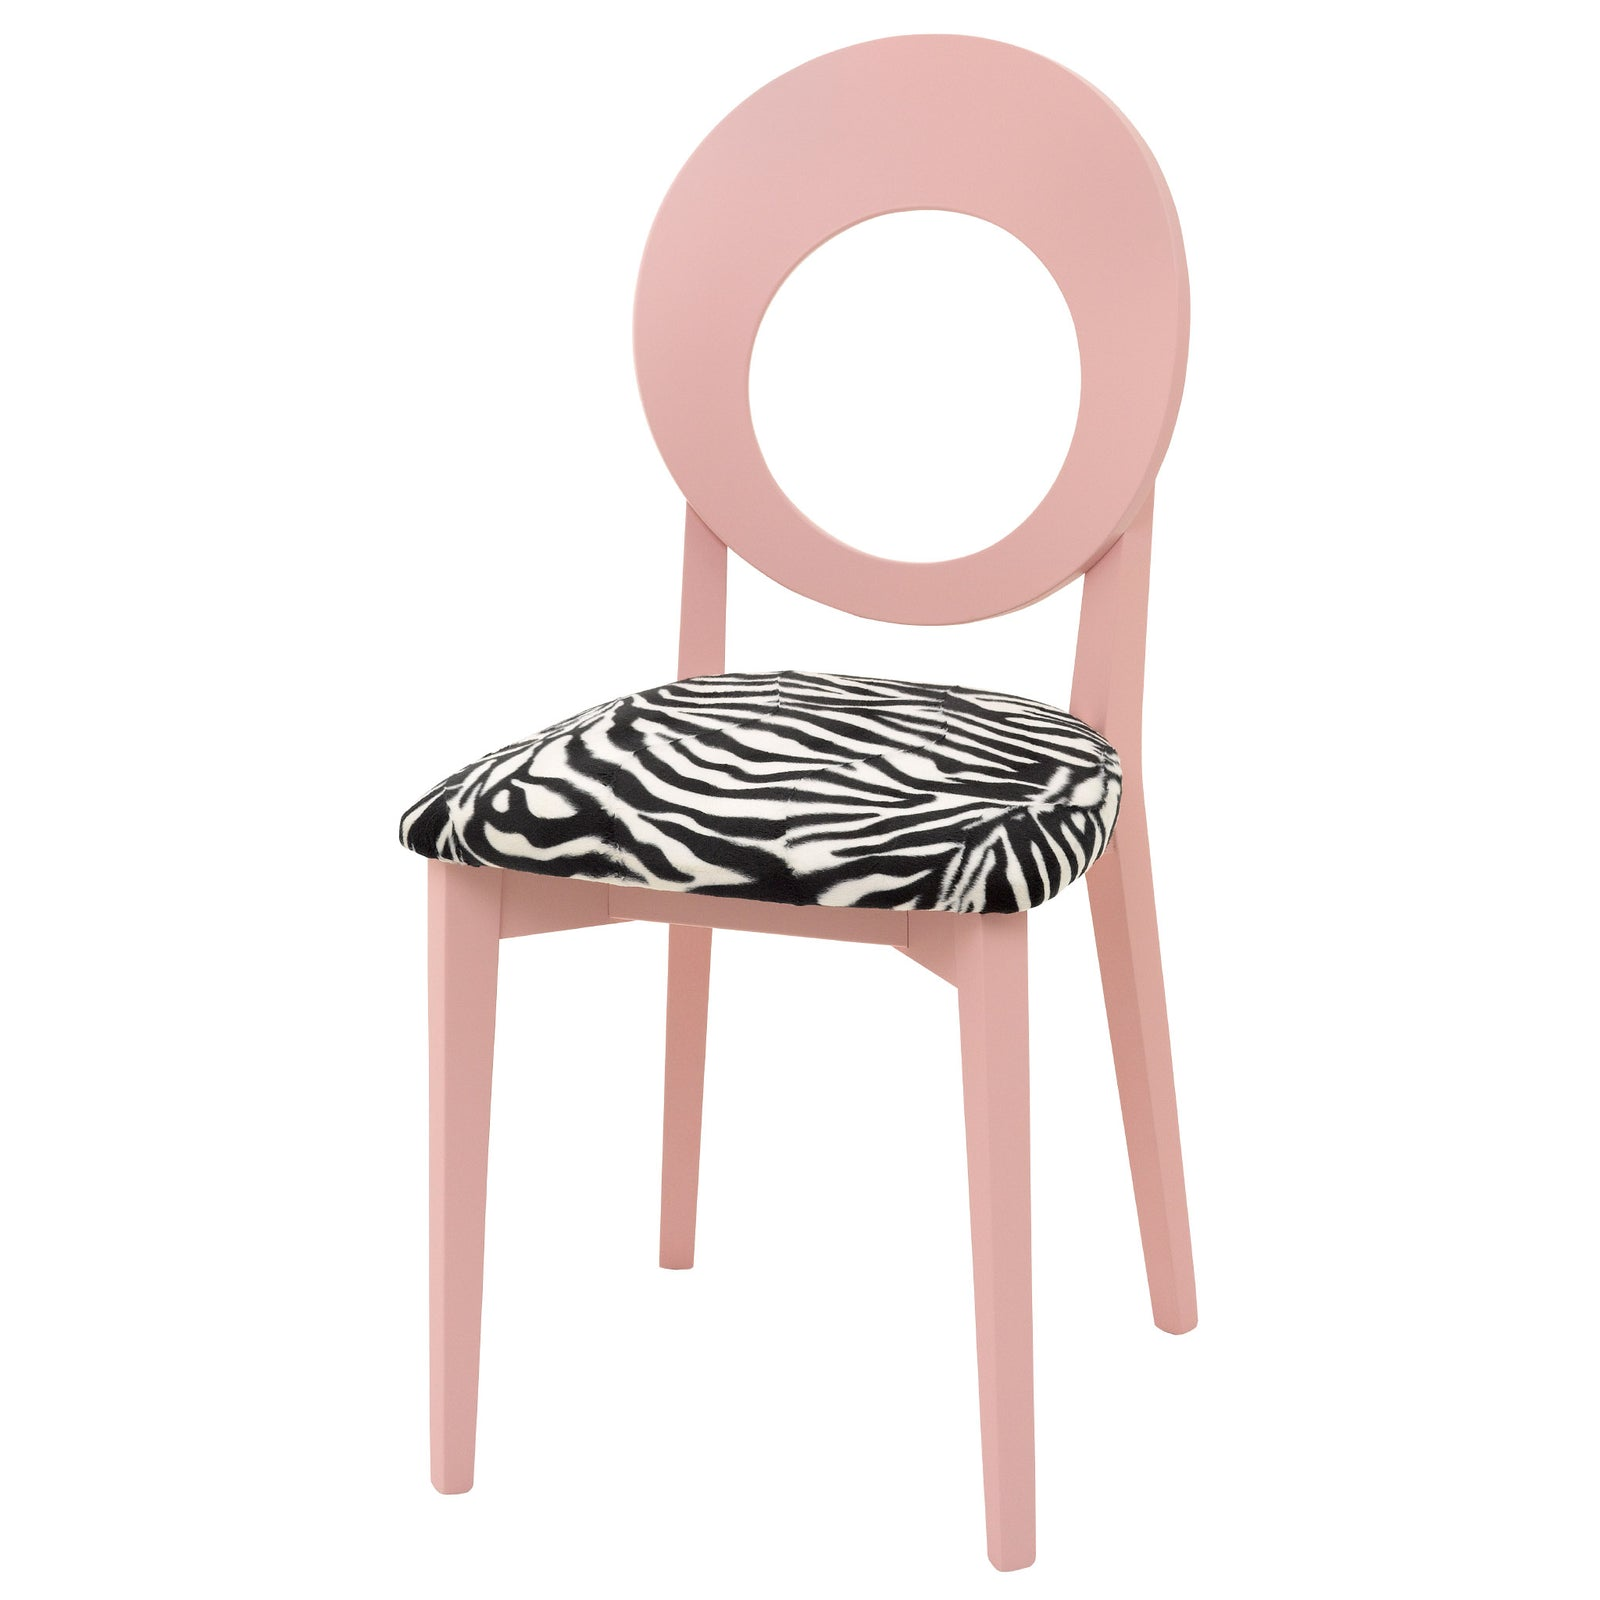 Chloe Contemporary Italian Chair in Luxurious Zebra Faux Fur and hand finished in Farrow & Ball Nancy's Blushes